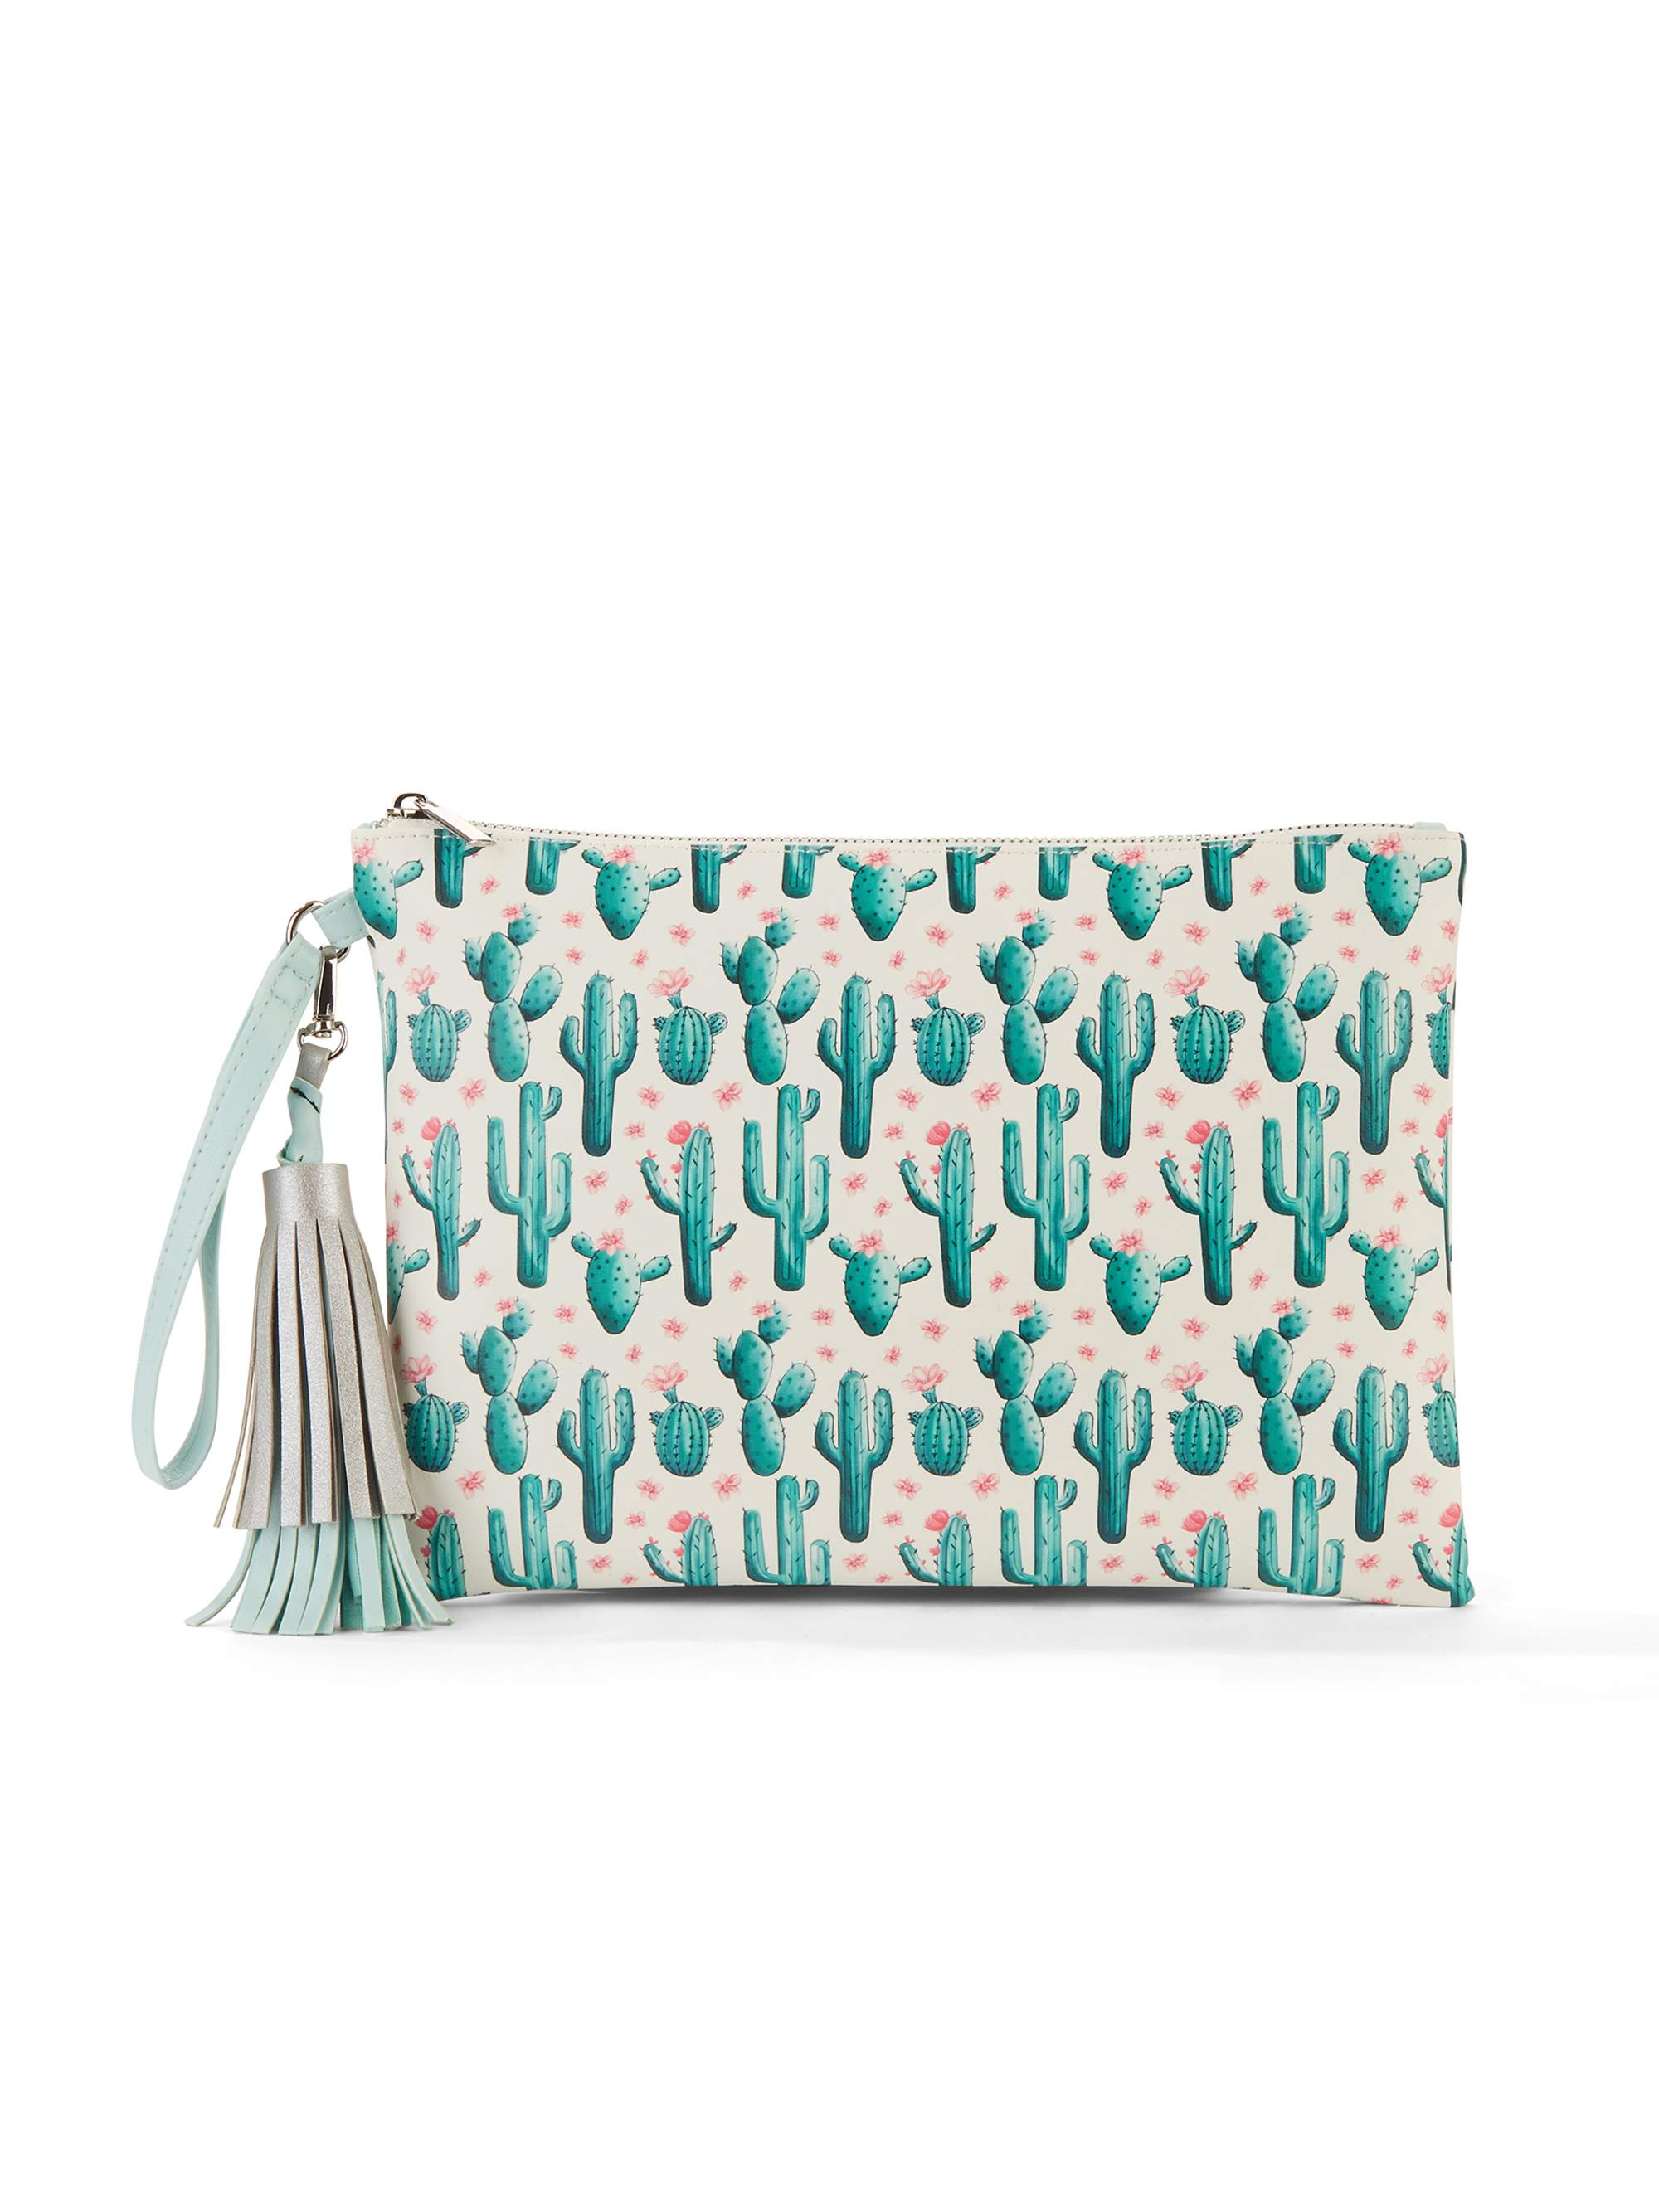 No Boundaries Mint Cactus Wristlet Tassel Pouch